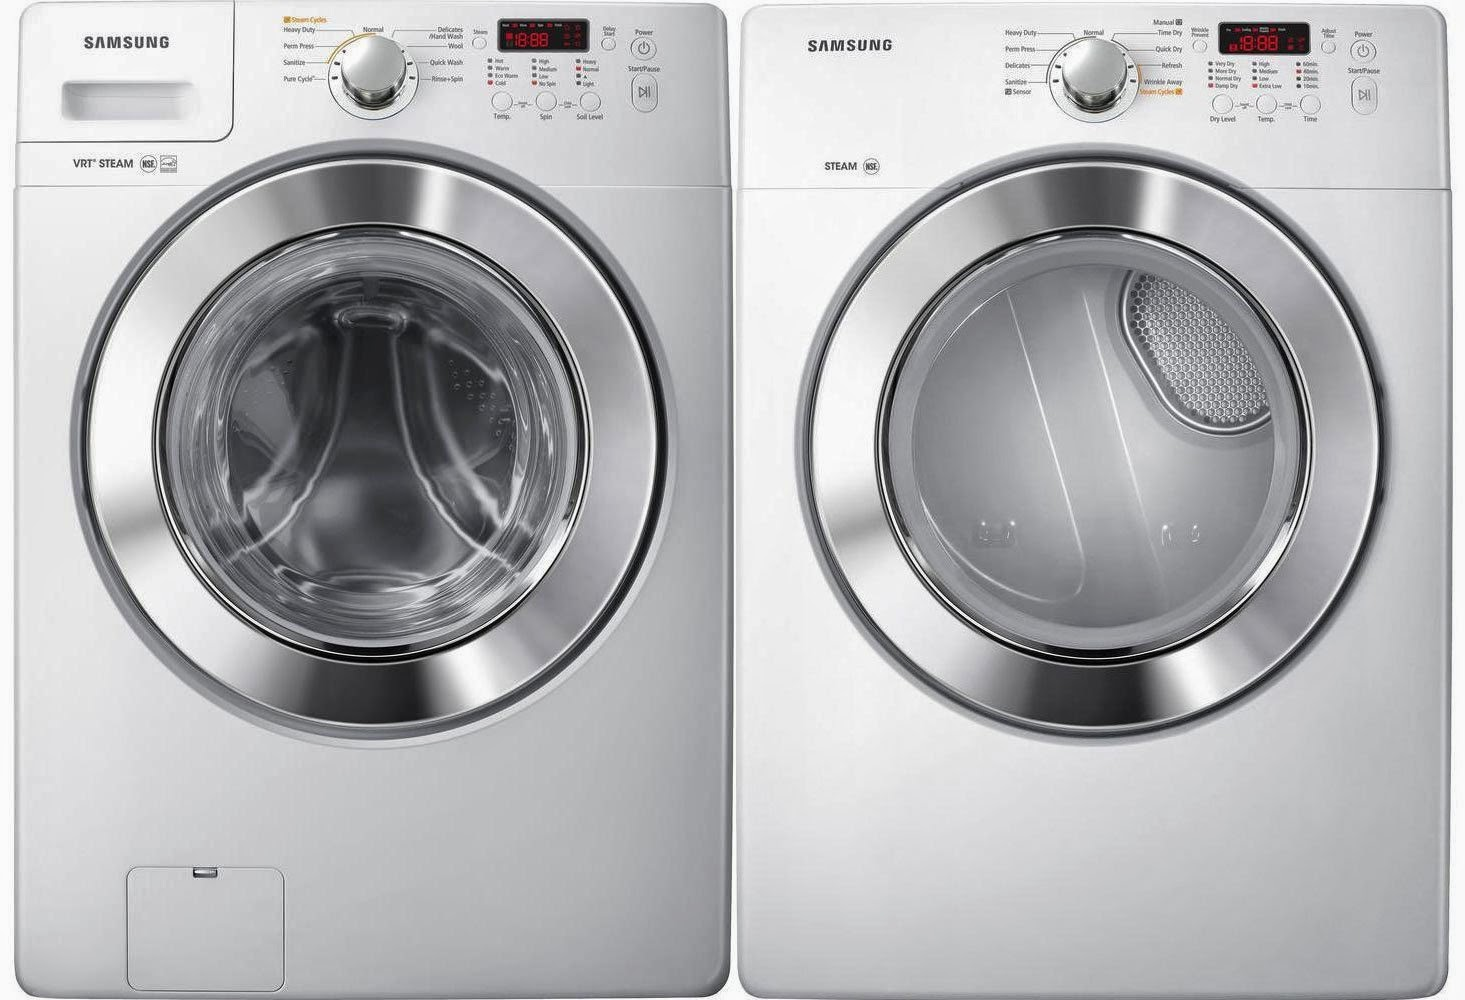 Lg 2 3 cu ft all in one washer and dryer - Samsung Pair Front Load Laundry Sets